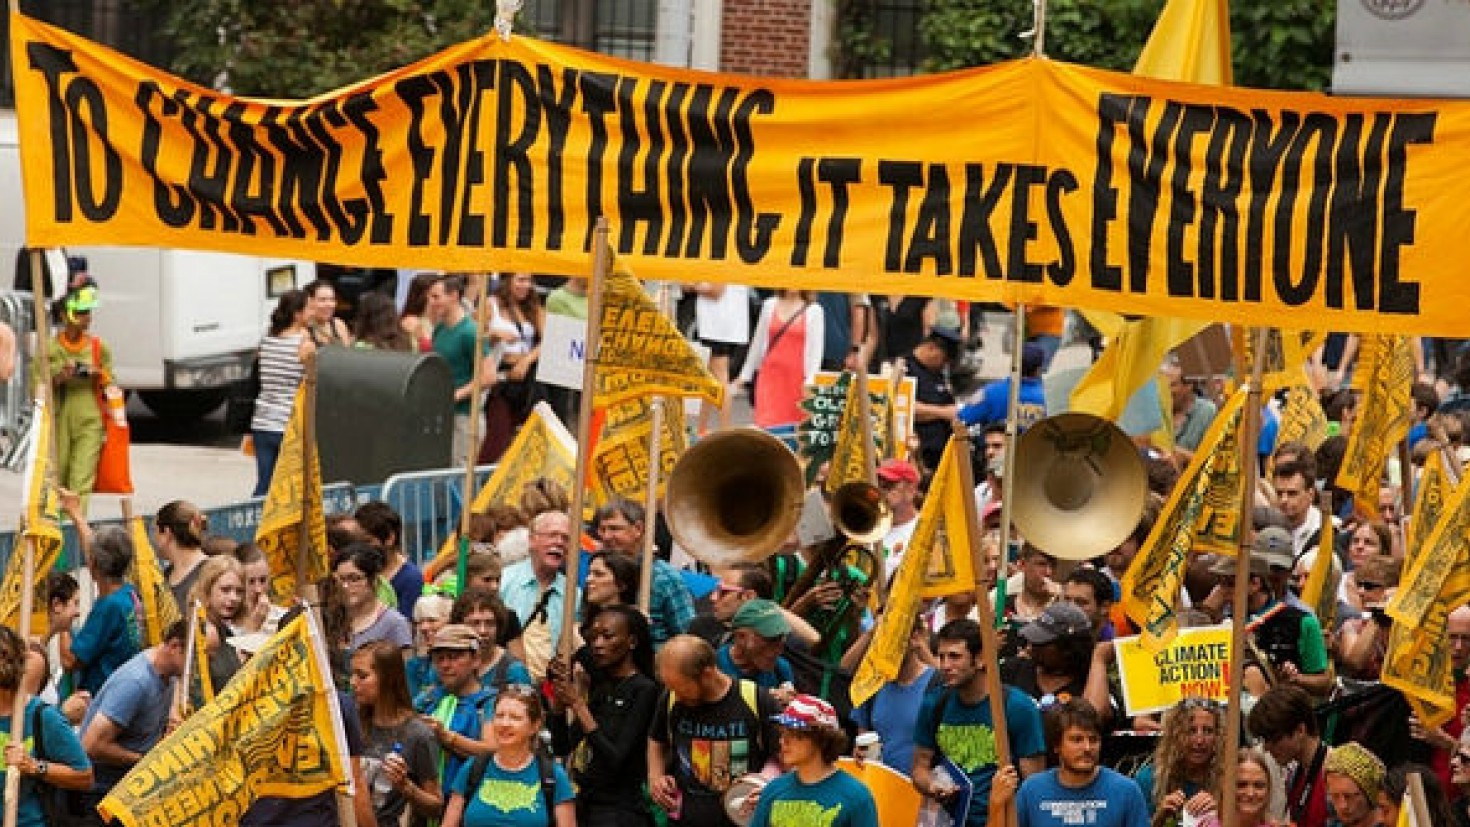 more than 300 000 people took to the streets of new york city for the people's climate march last year. but most people oppose climate action. photo: south bend voice / FLickr